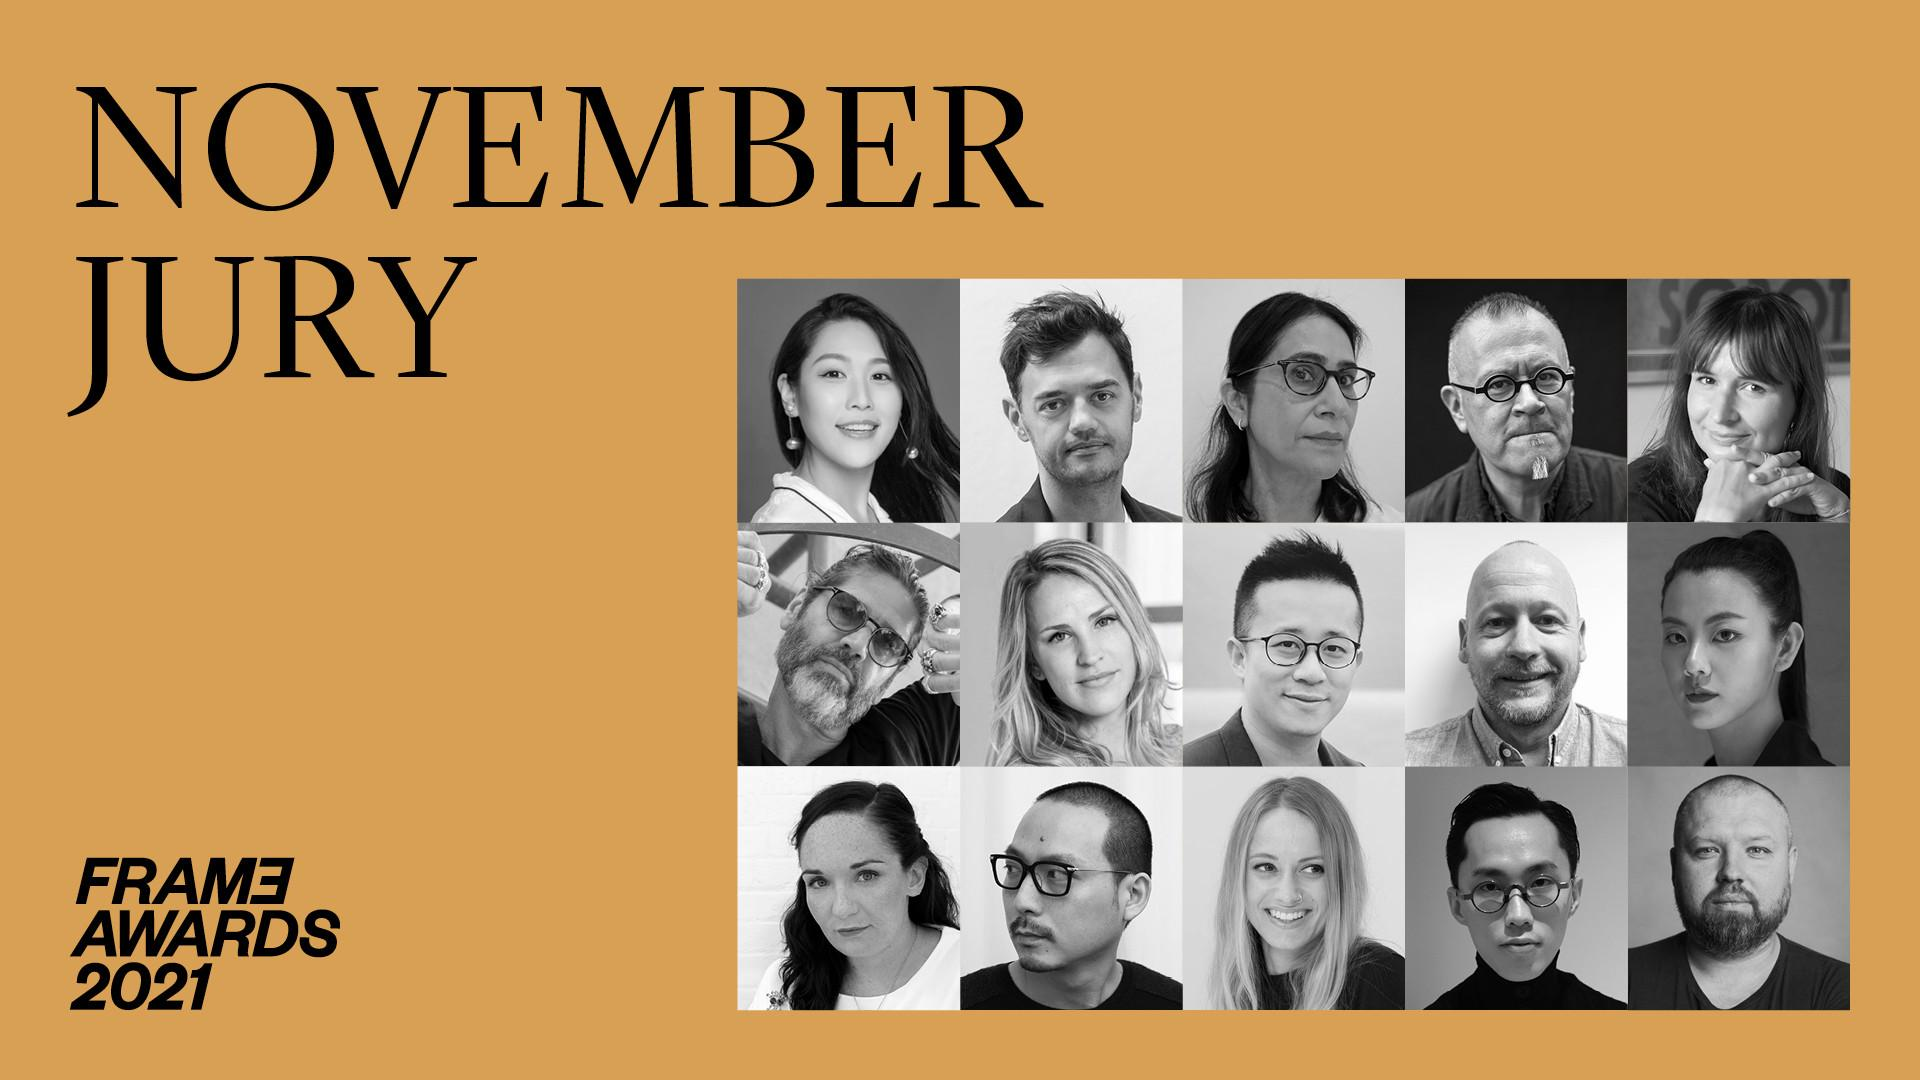 The diverse Frame Awards November jury includes experts in design, strategy and education